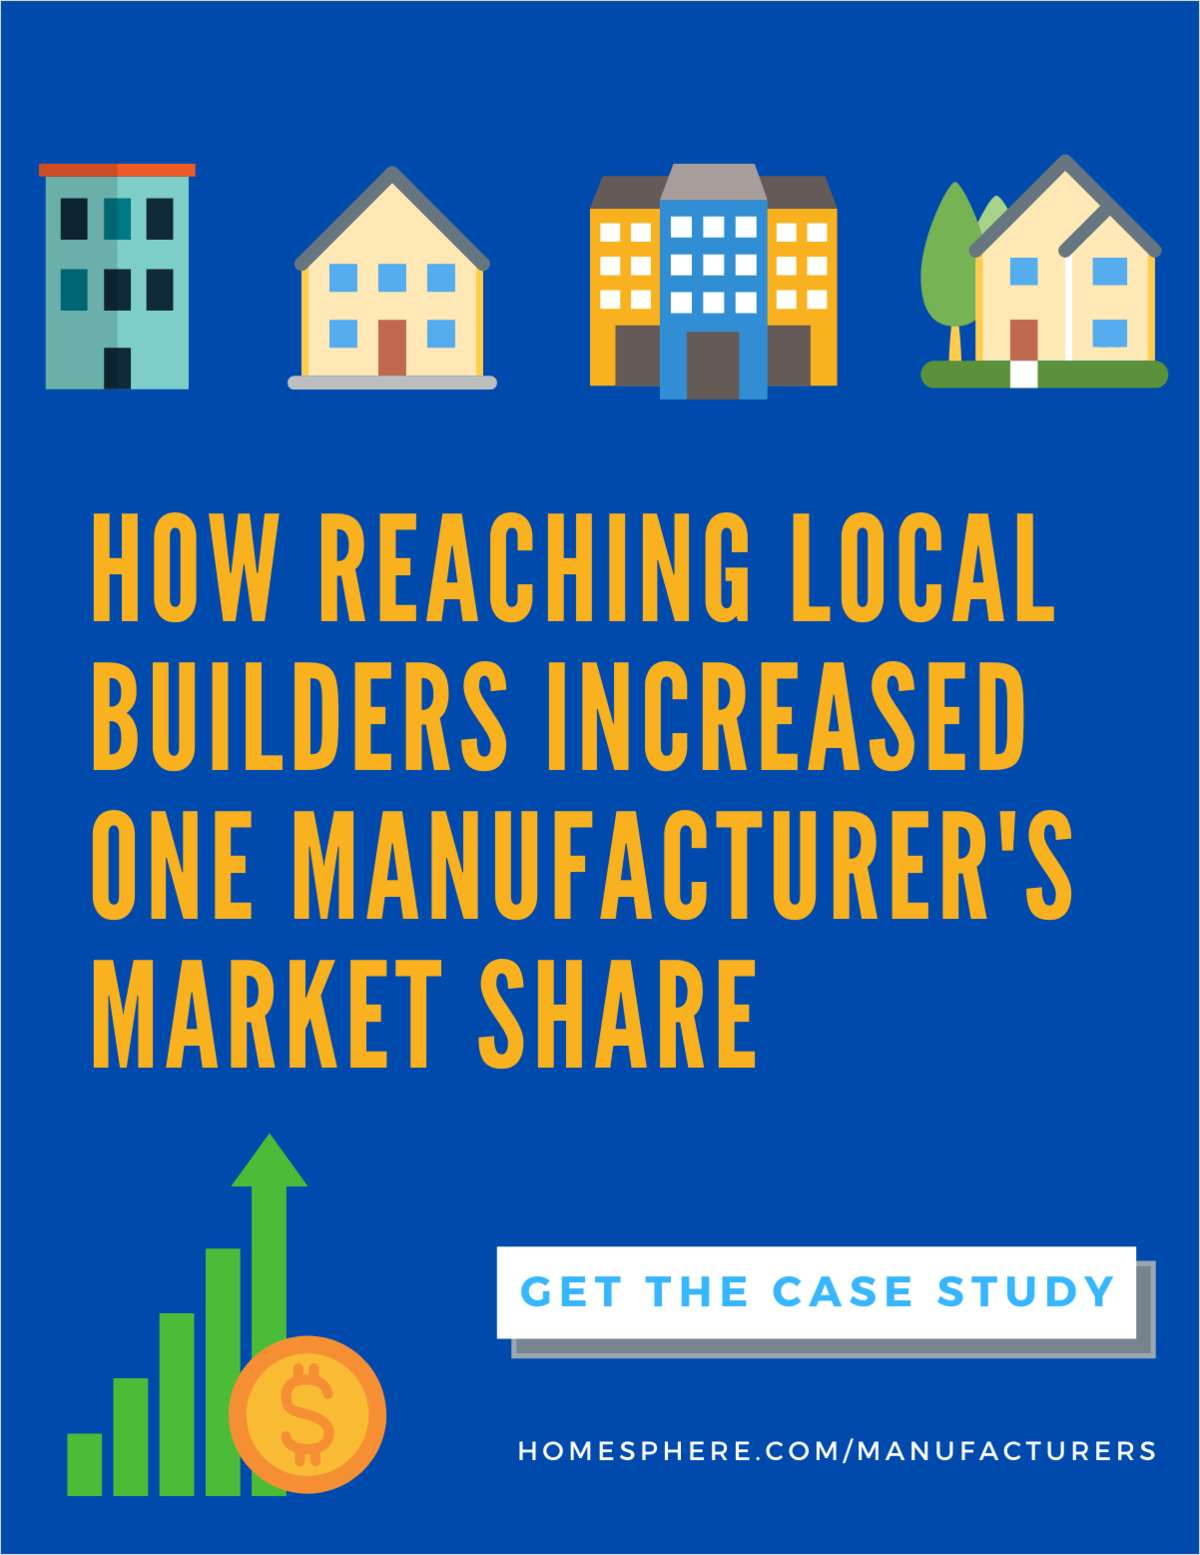 How Reaching Local Builders Increased One Manufacturer's Market Share